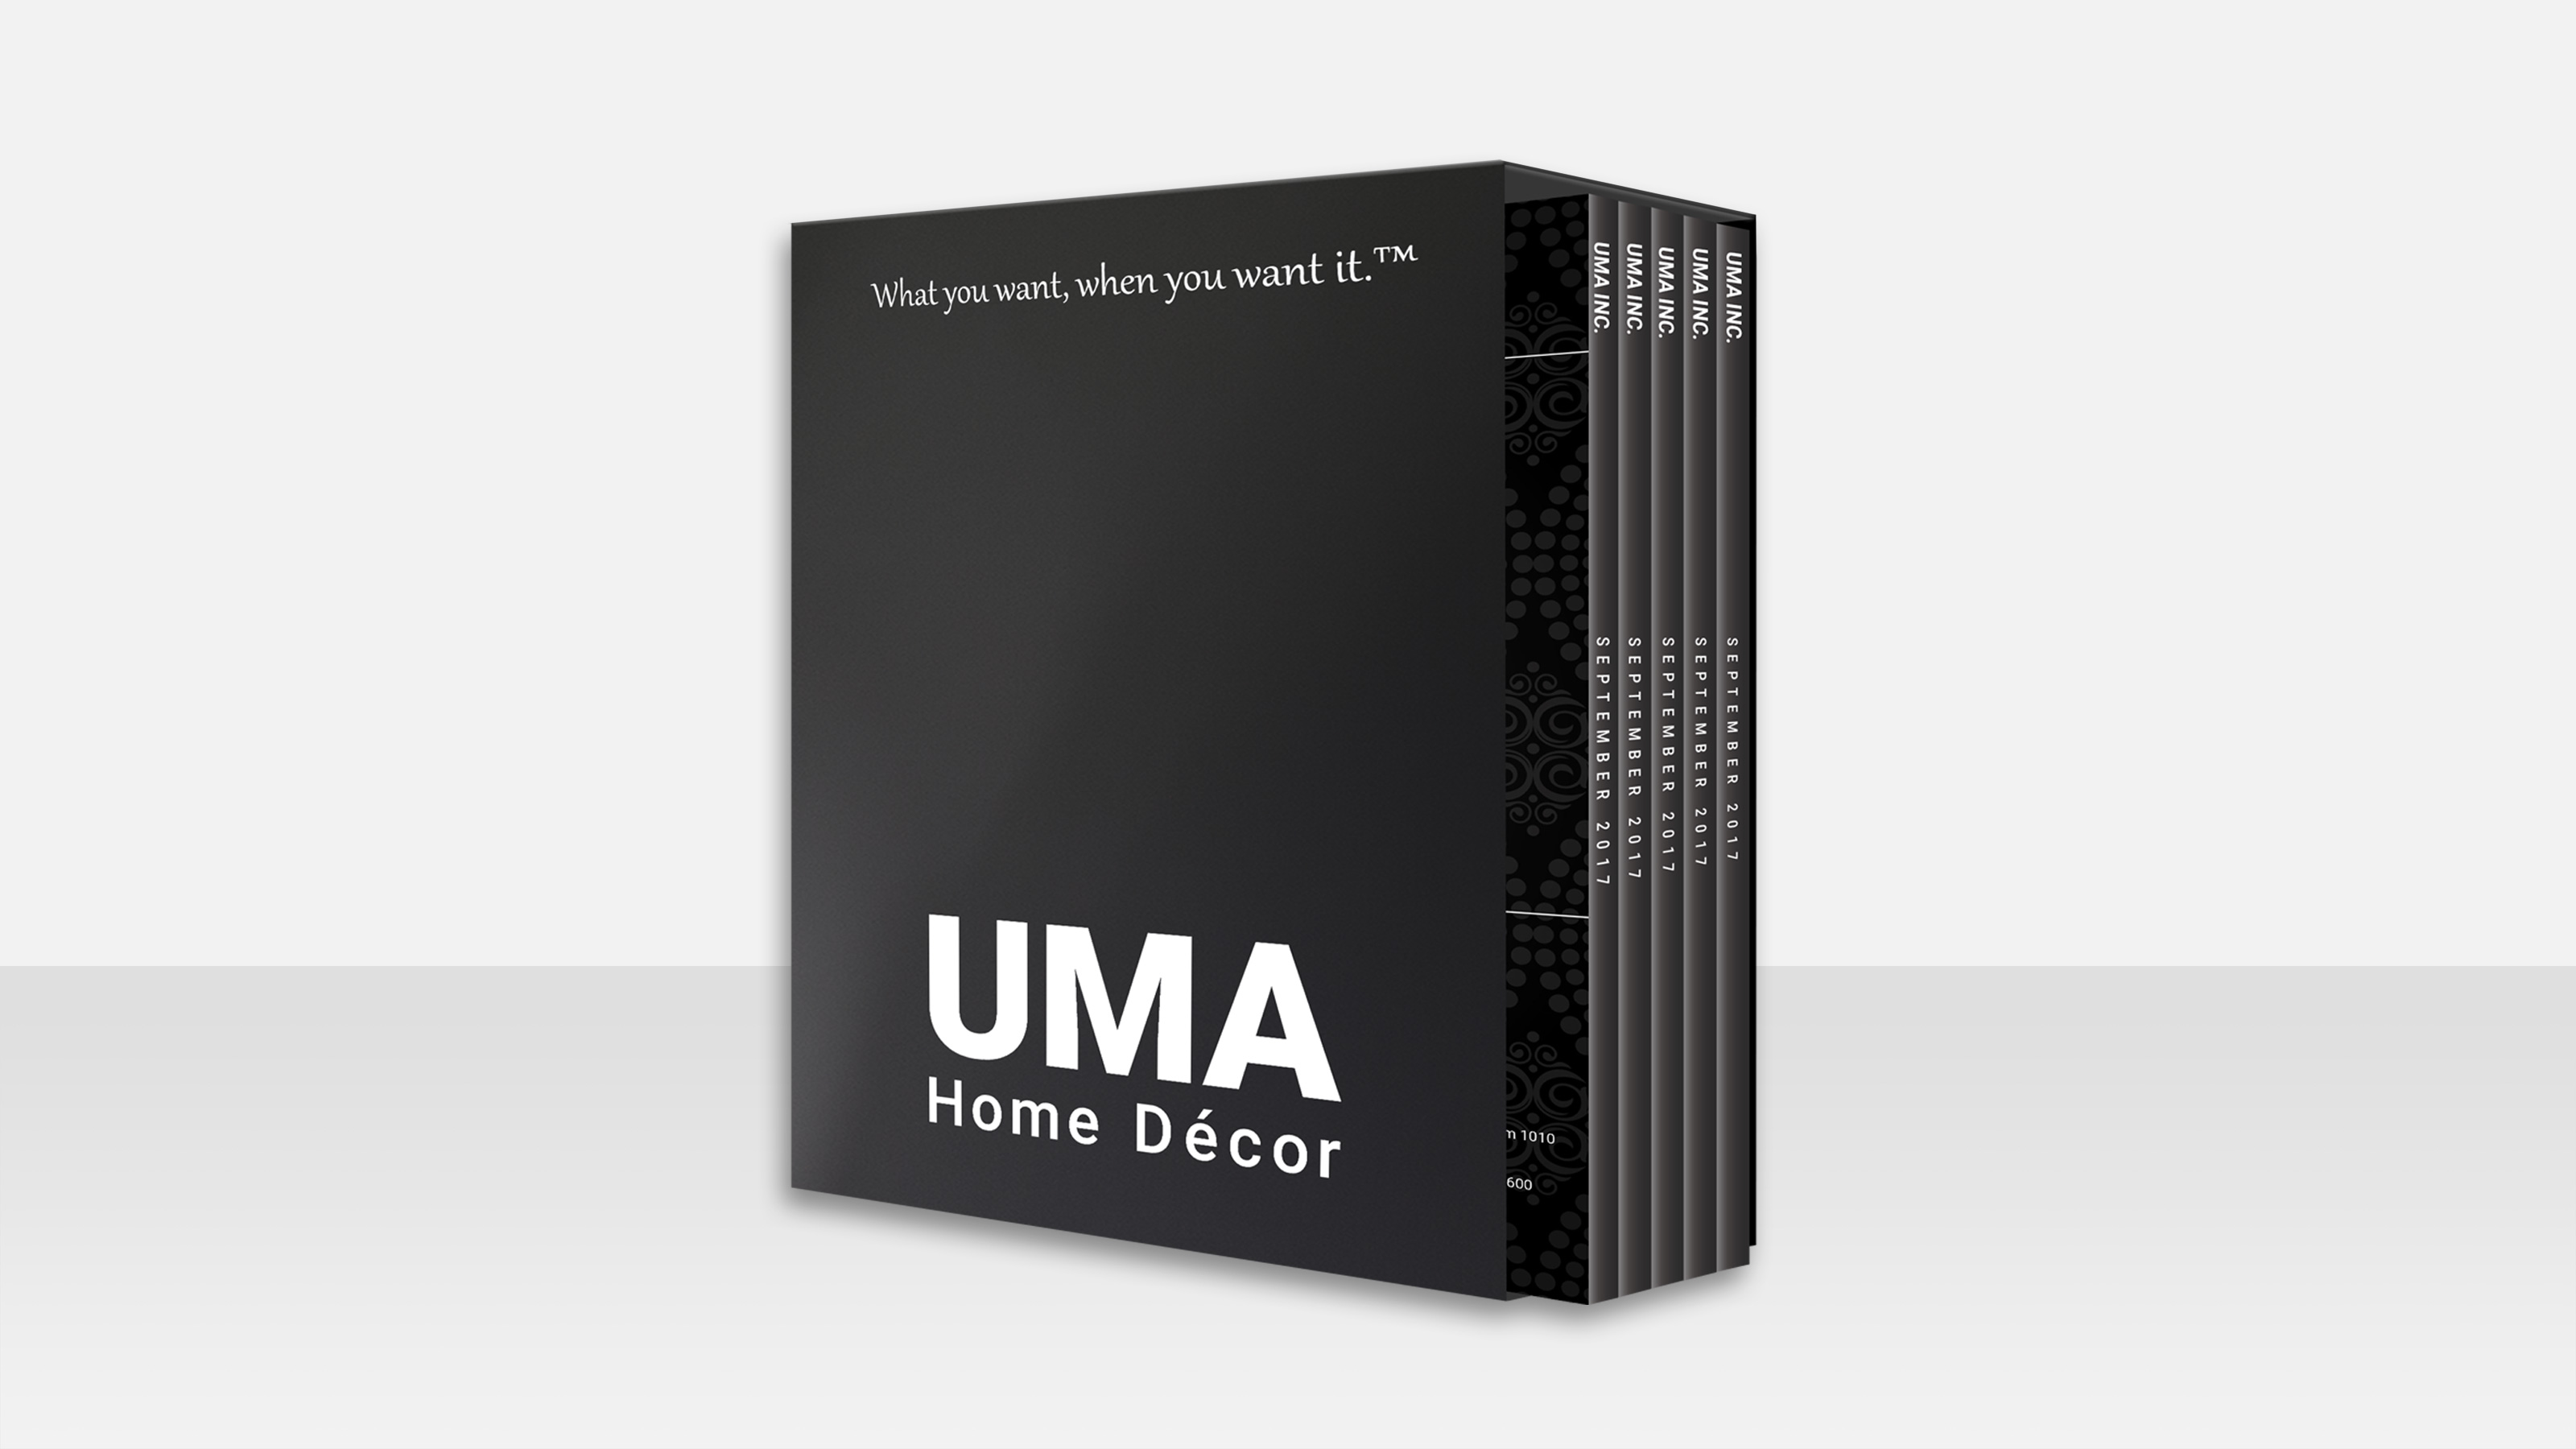 uma home decor packaging